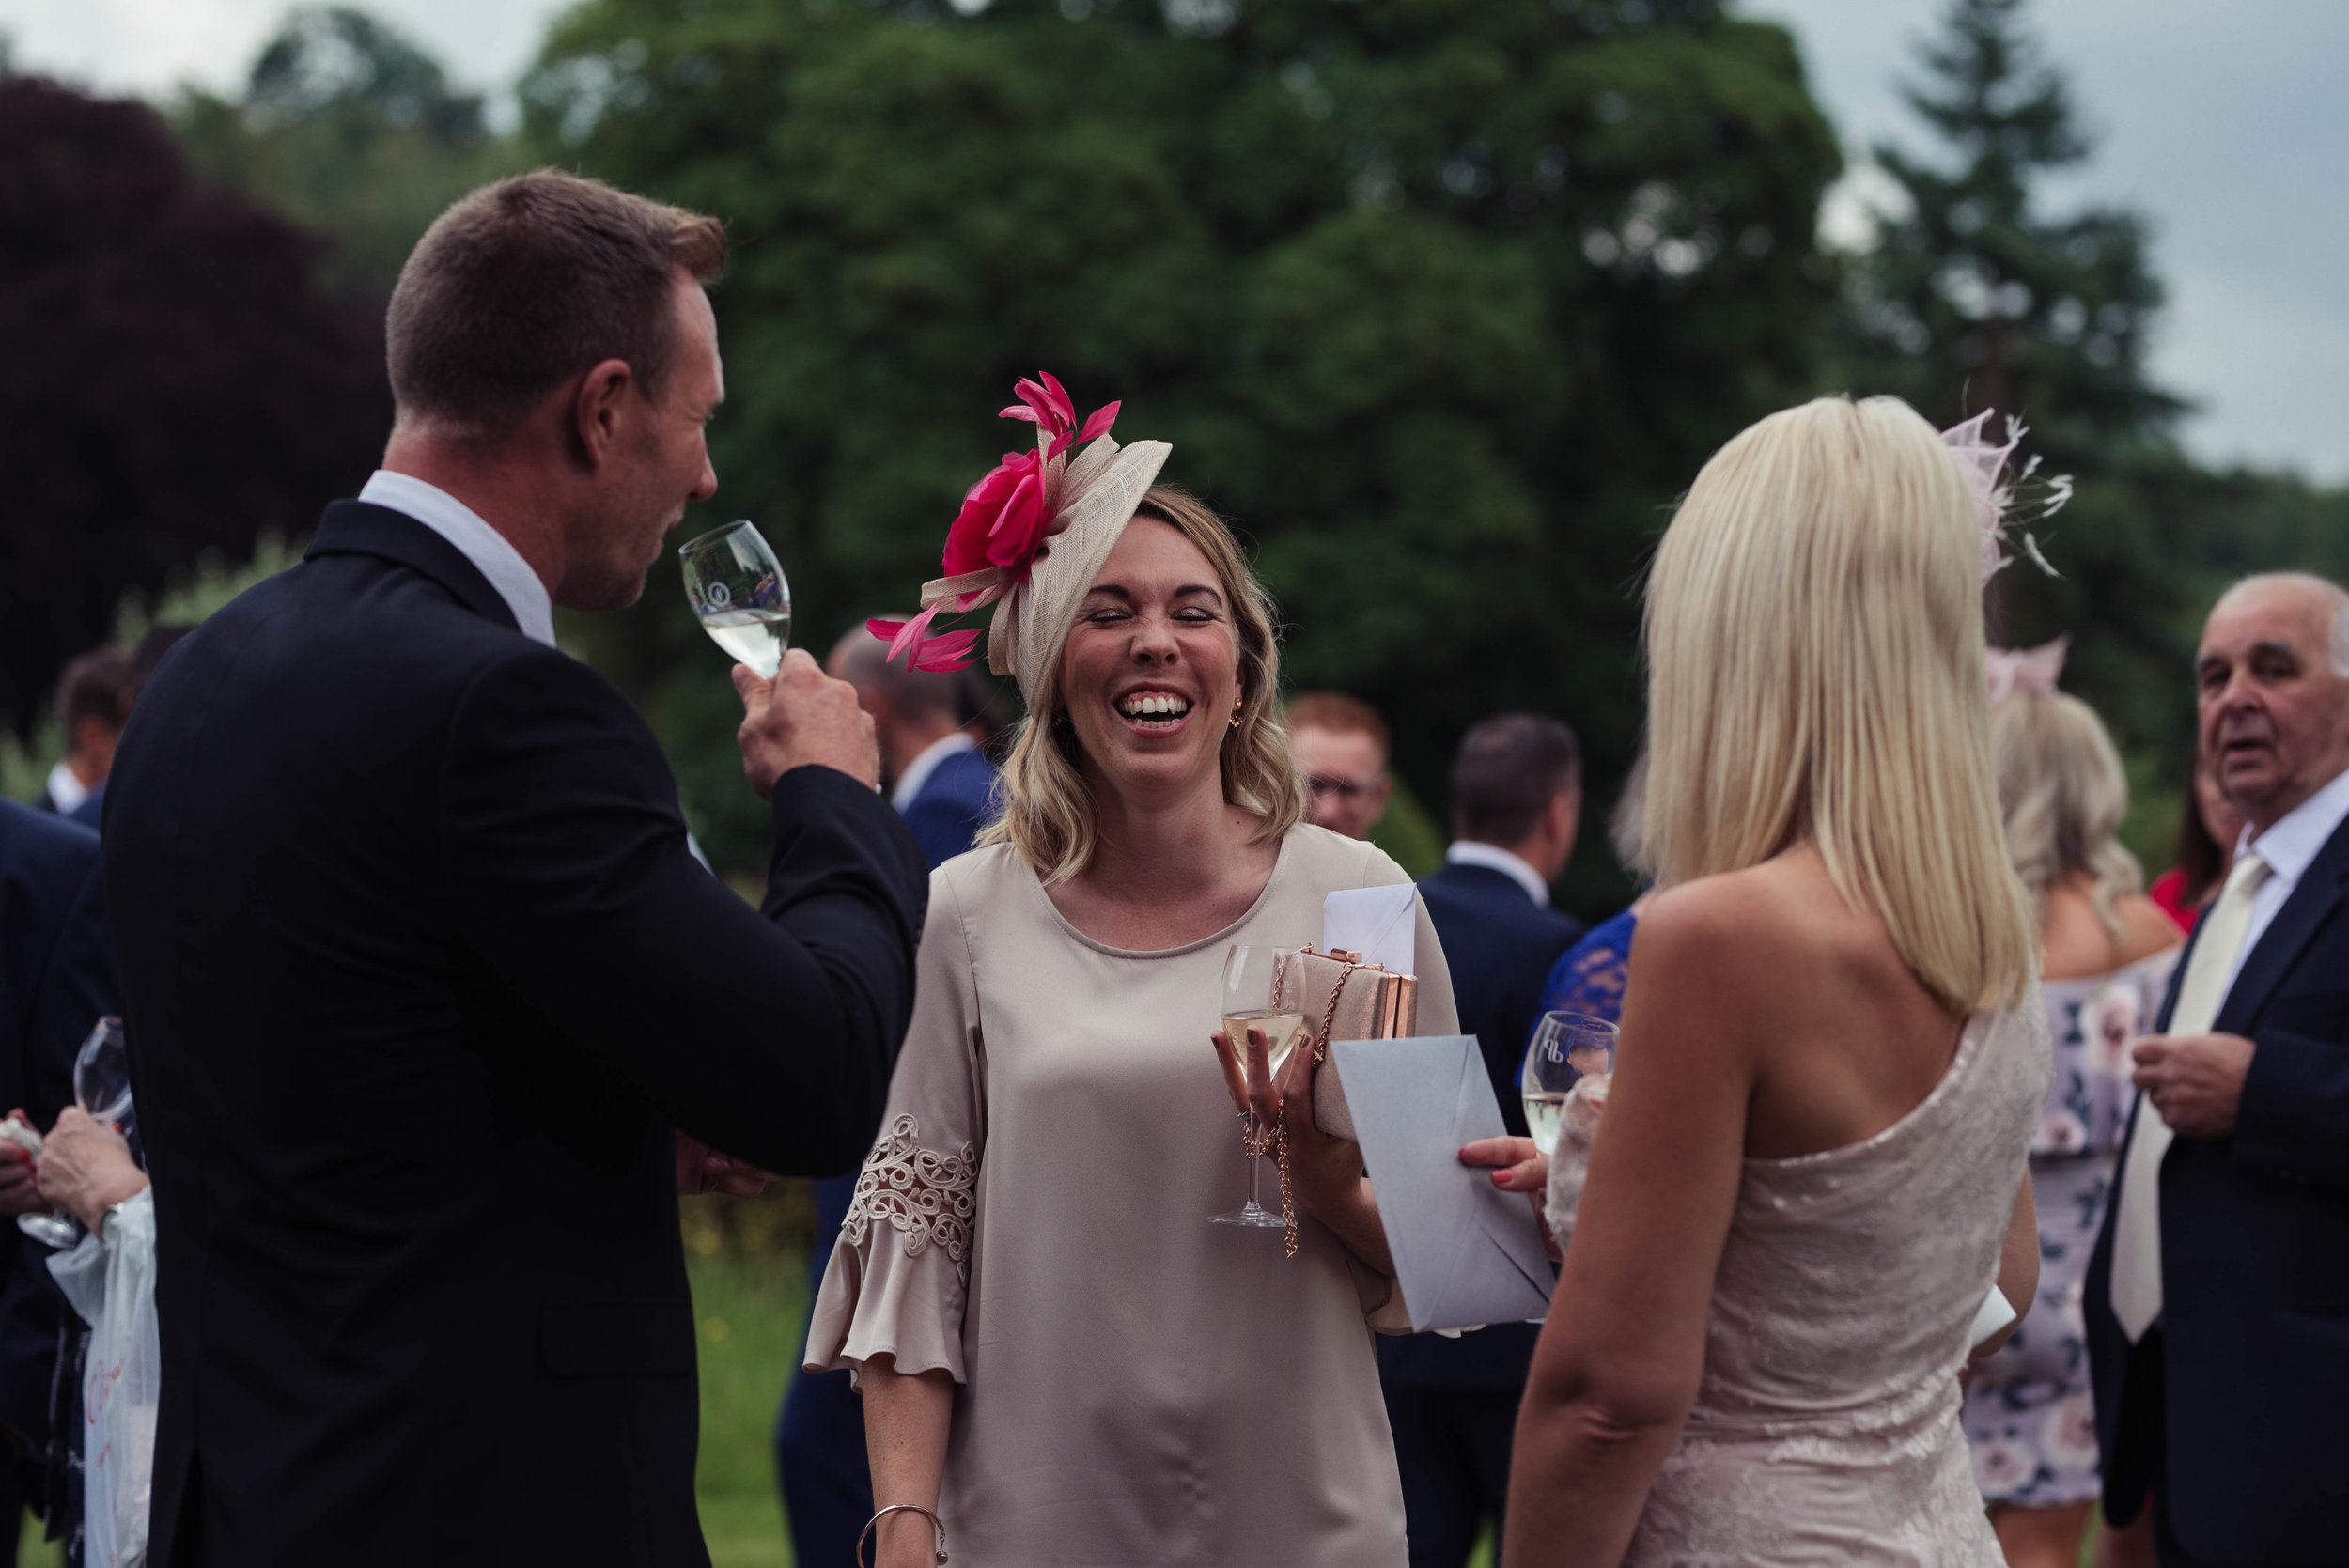 A wedding guest has a giggle with members of her group during the drinks reception